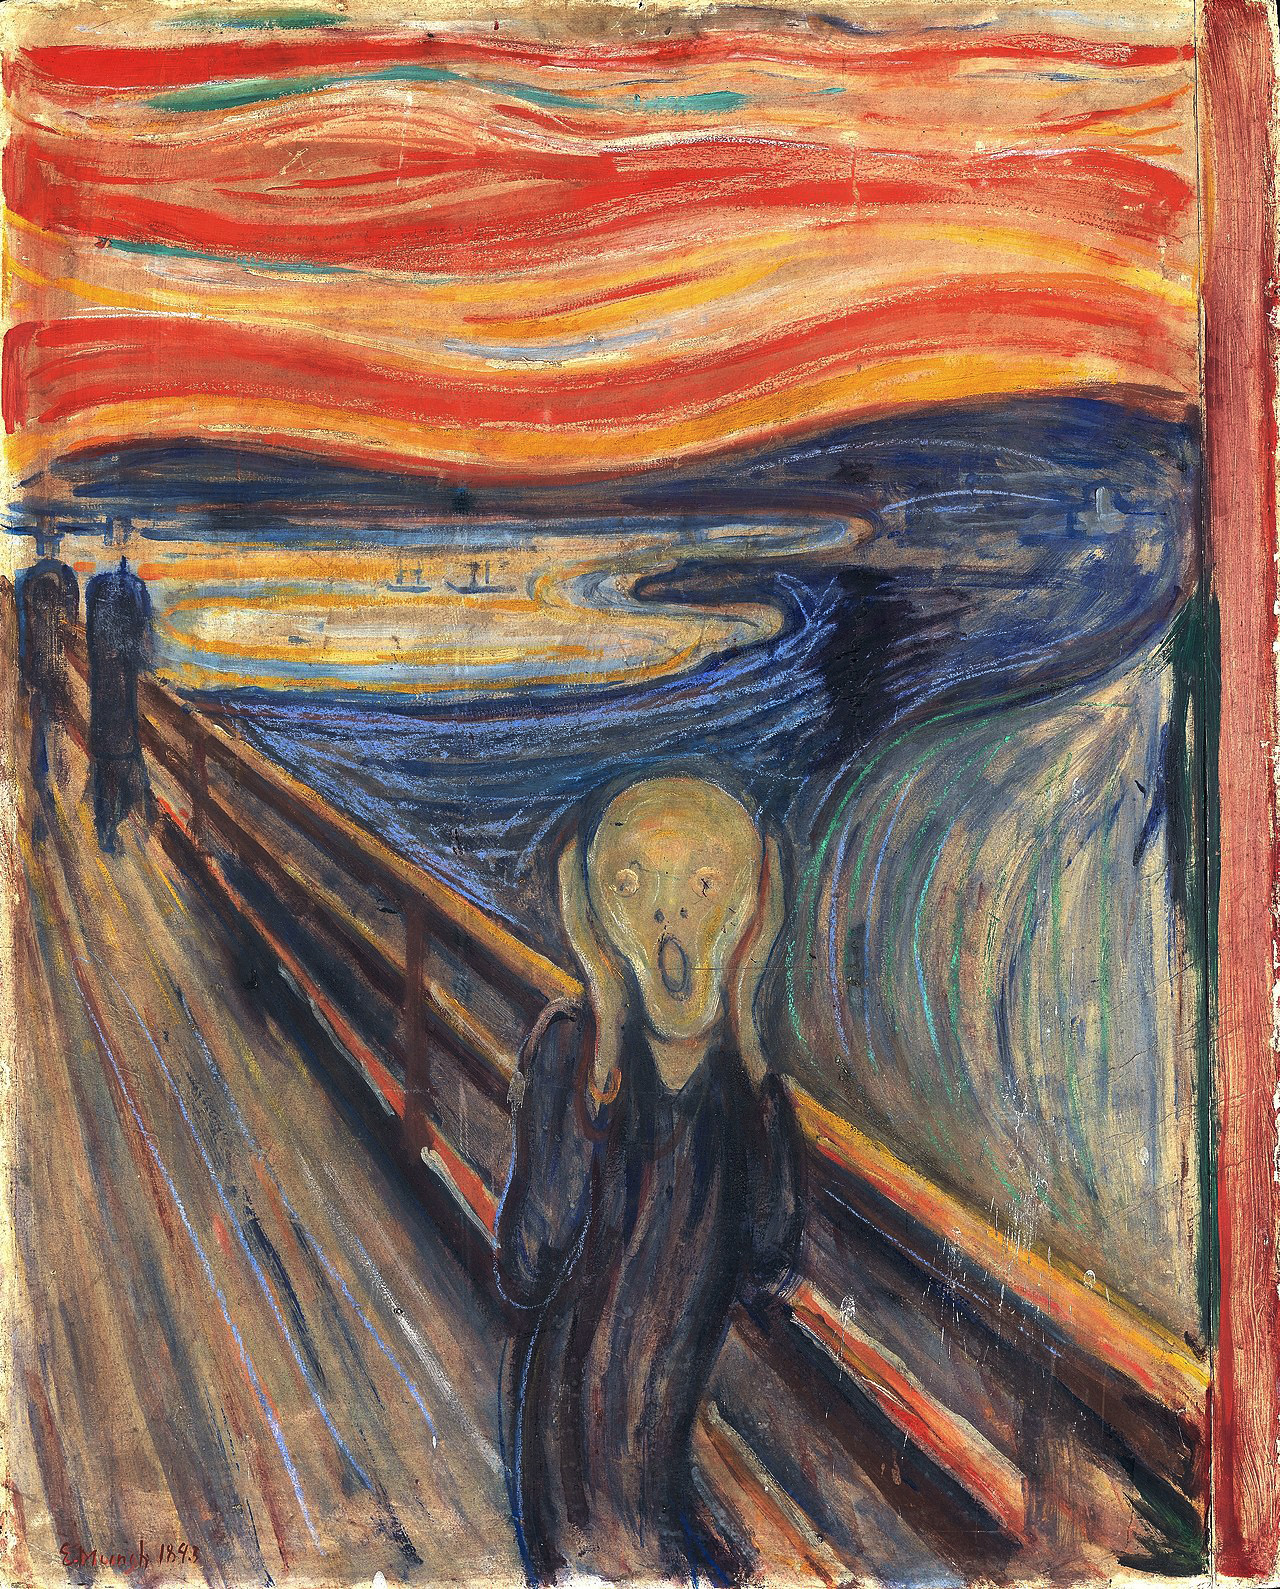 https://media.thisisgallery.com/wp-content/uploads/2018/12/edvardmunch_16.jpg